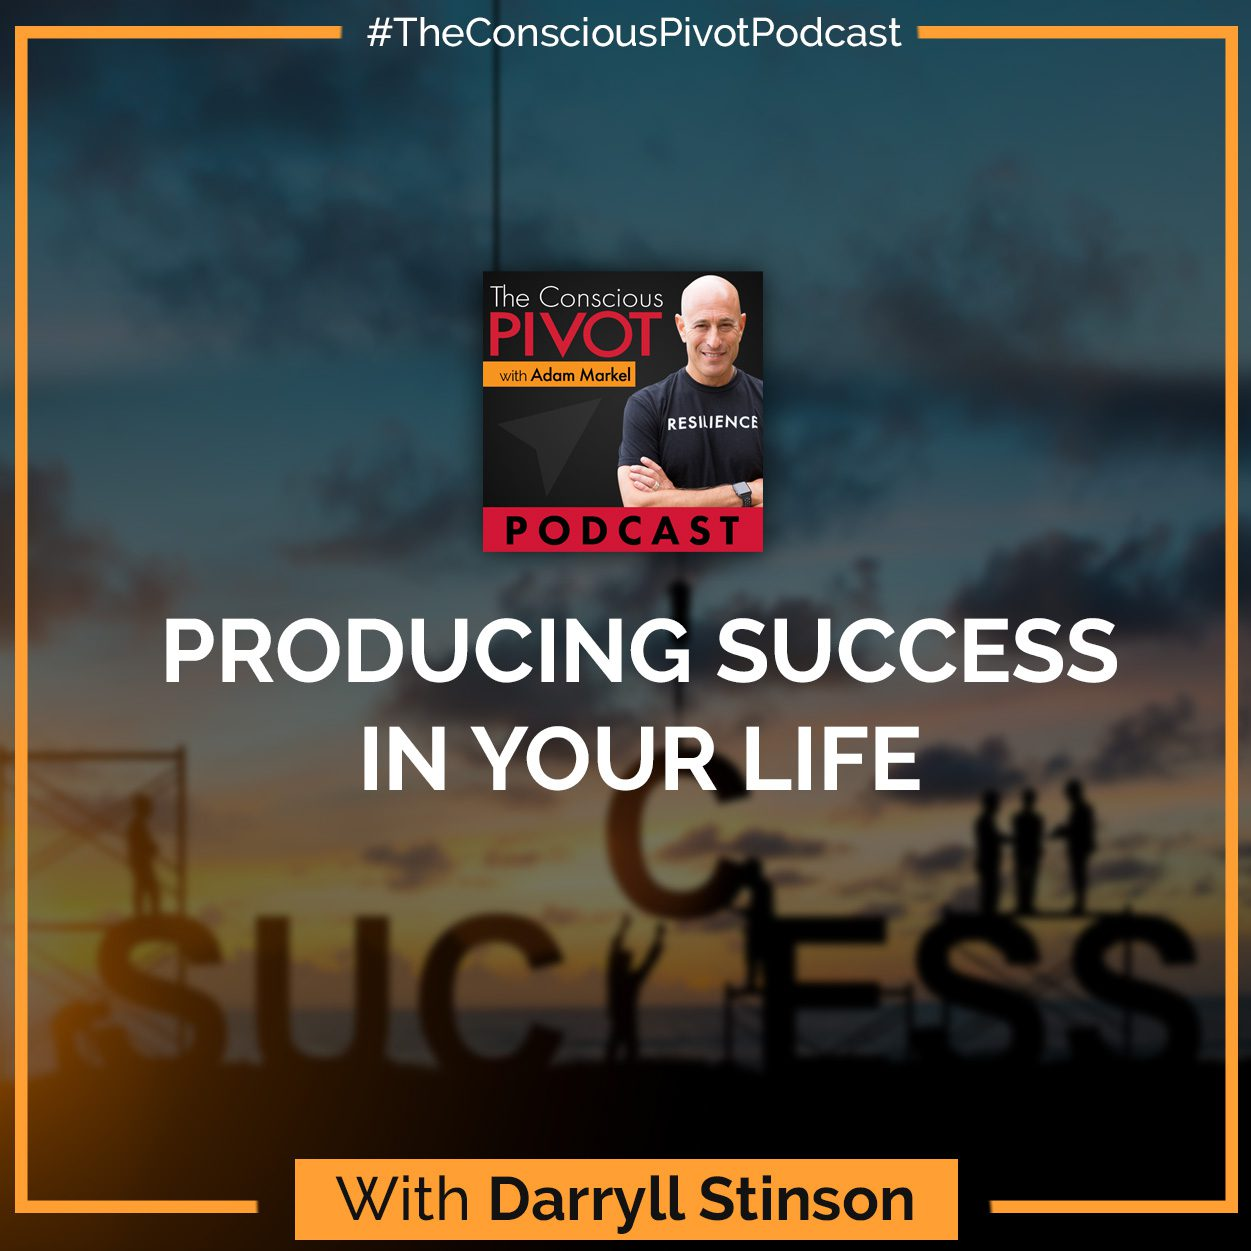 Producing Success In Your Life With Darryll Stinson